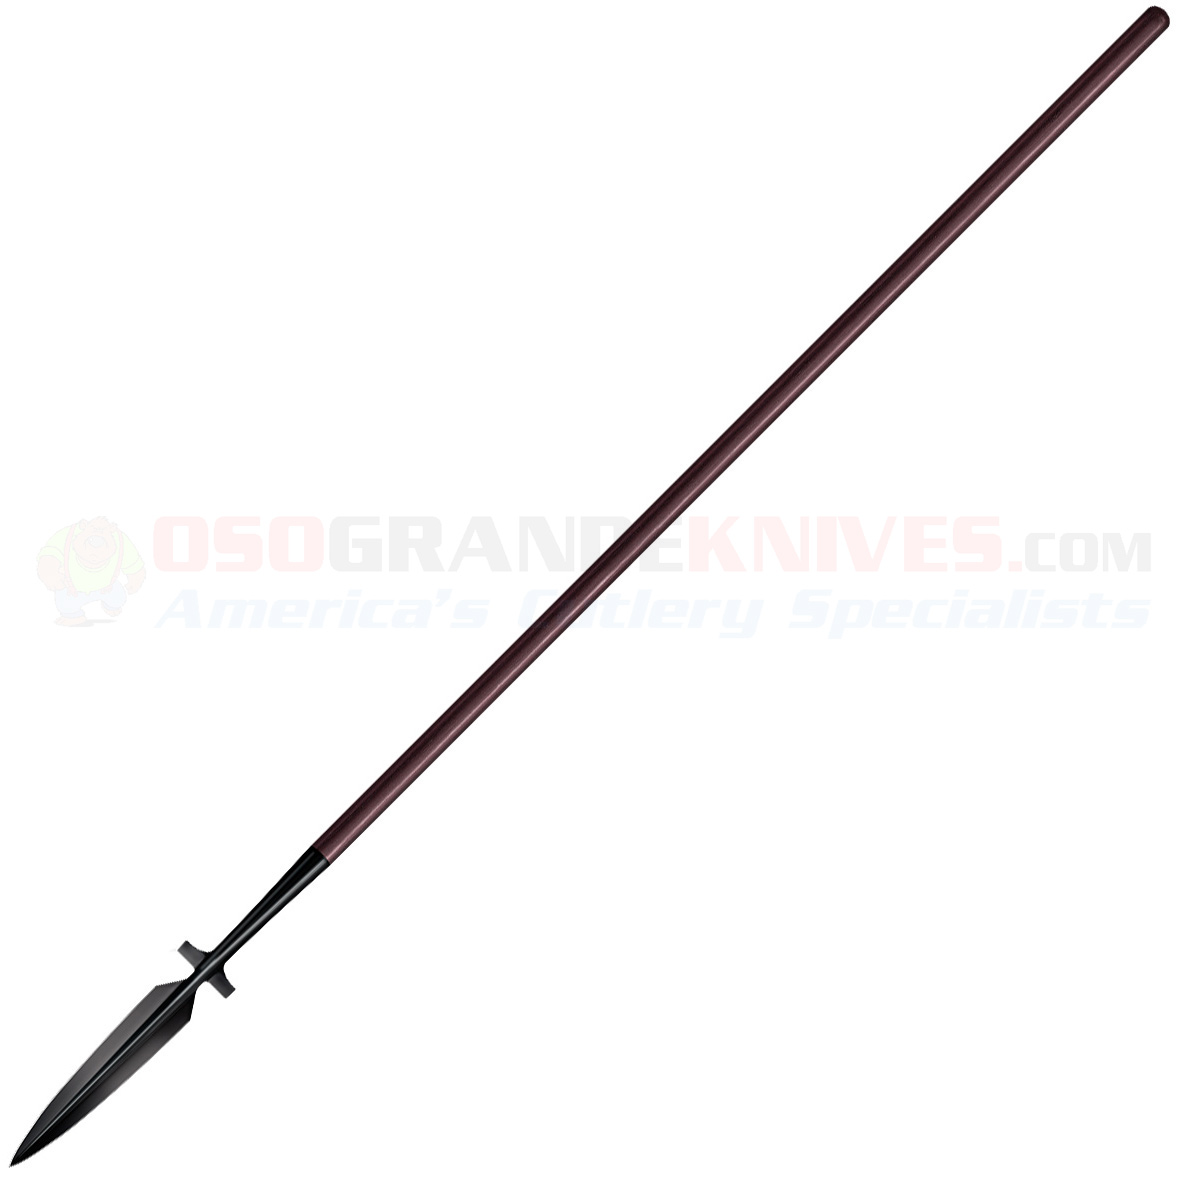 Cold Steel Maa Winged Spear Battle Spear 95mw